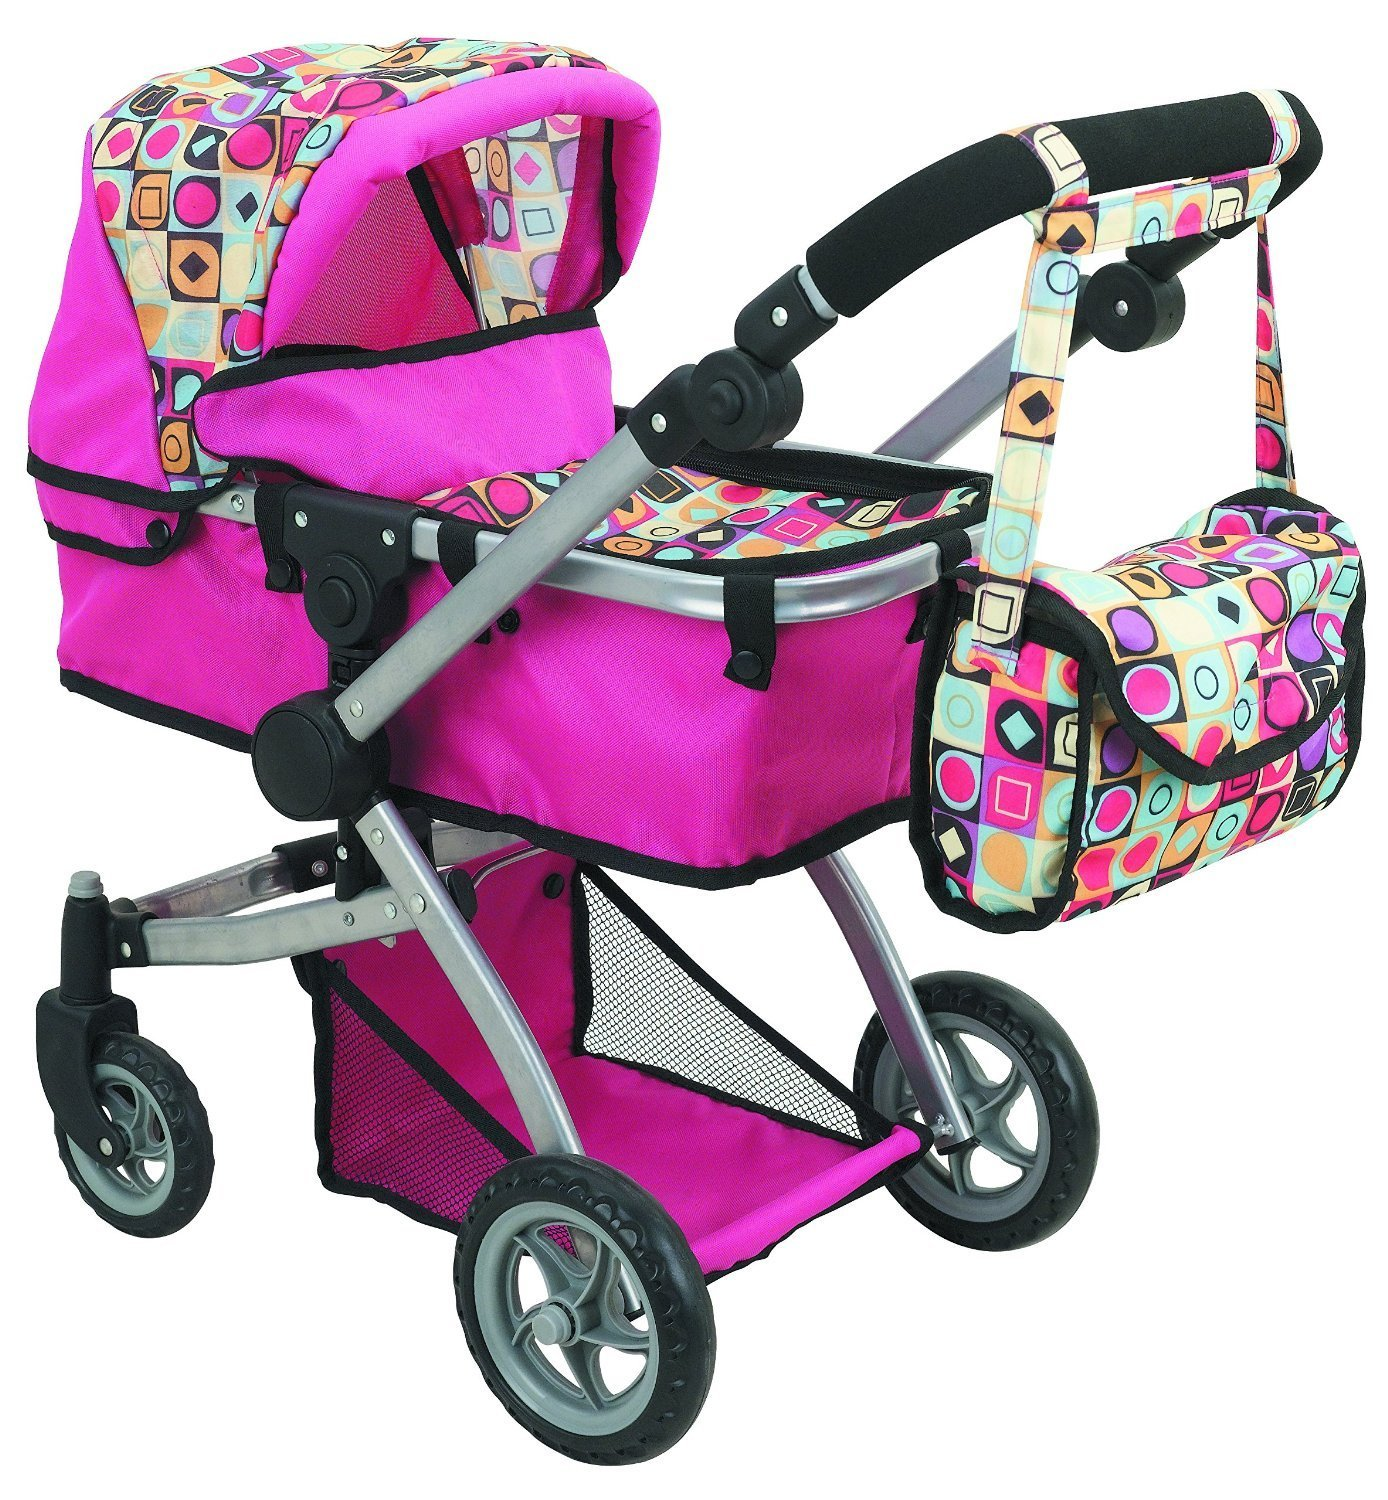 Doll Strollers Pro Deluxe Doll Stroller with Swiveling Wheels